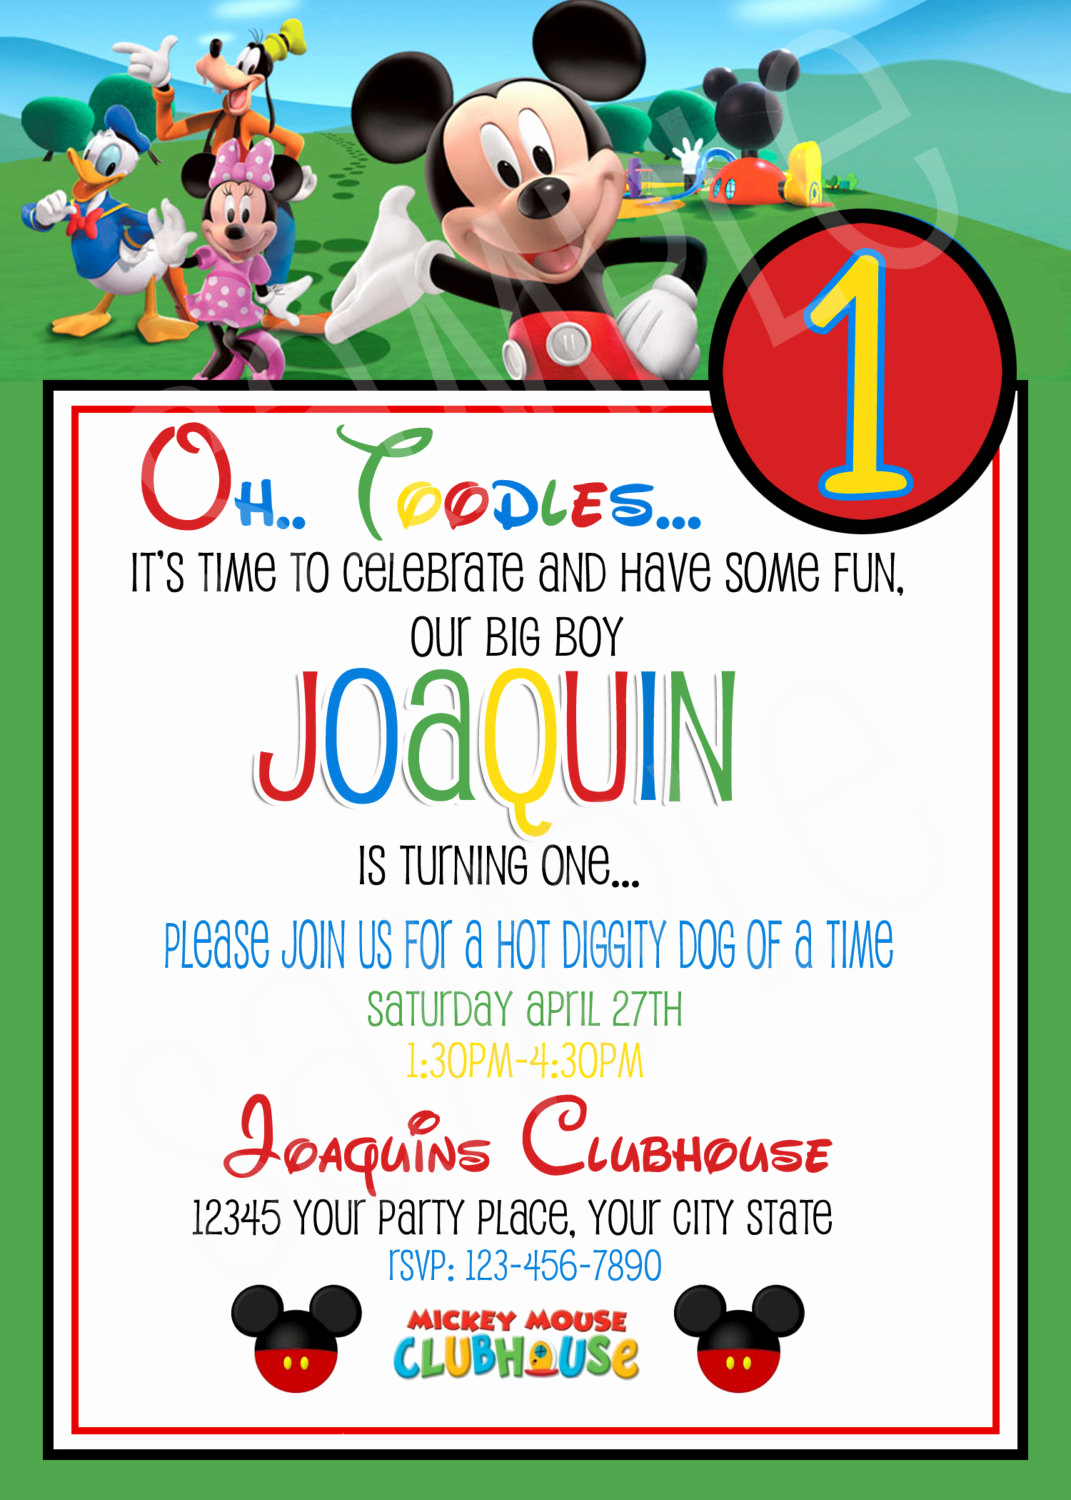 Mickey Mouse Clubhouse Invitation Template Beautiful Mickey Mouse Clubhouse Birthday Invitations Printable